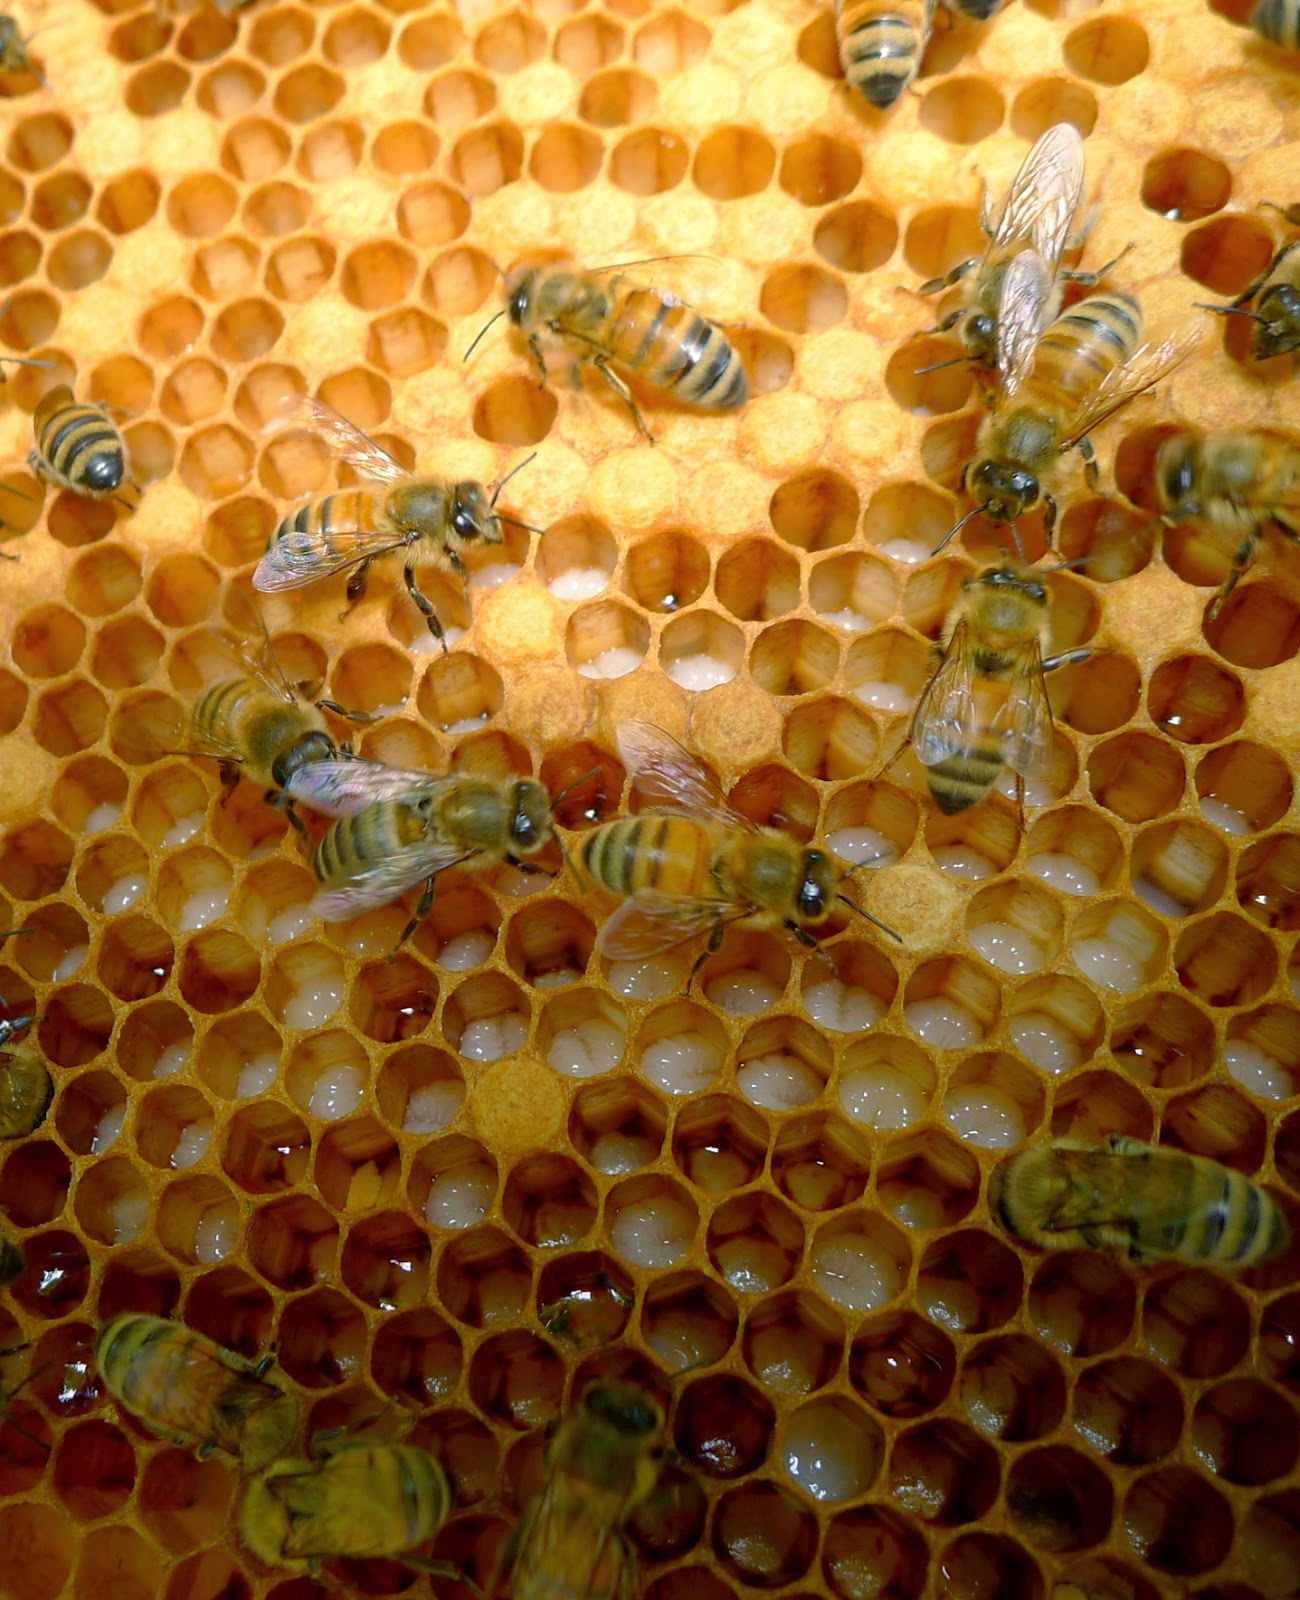 Uncapped brood and honey, URI Master Gardeners, Edible Forest Garden